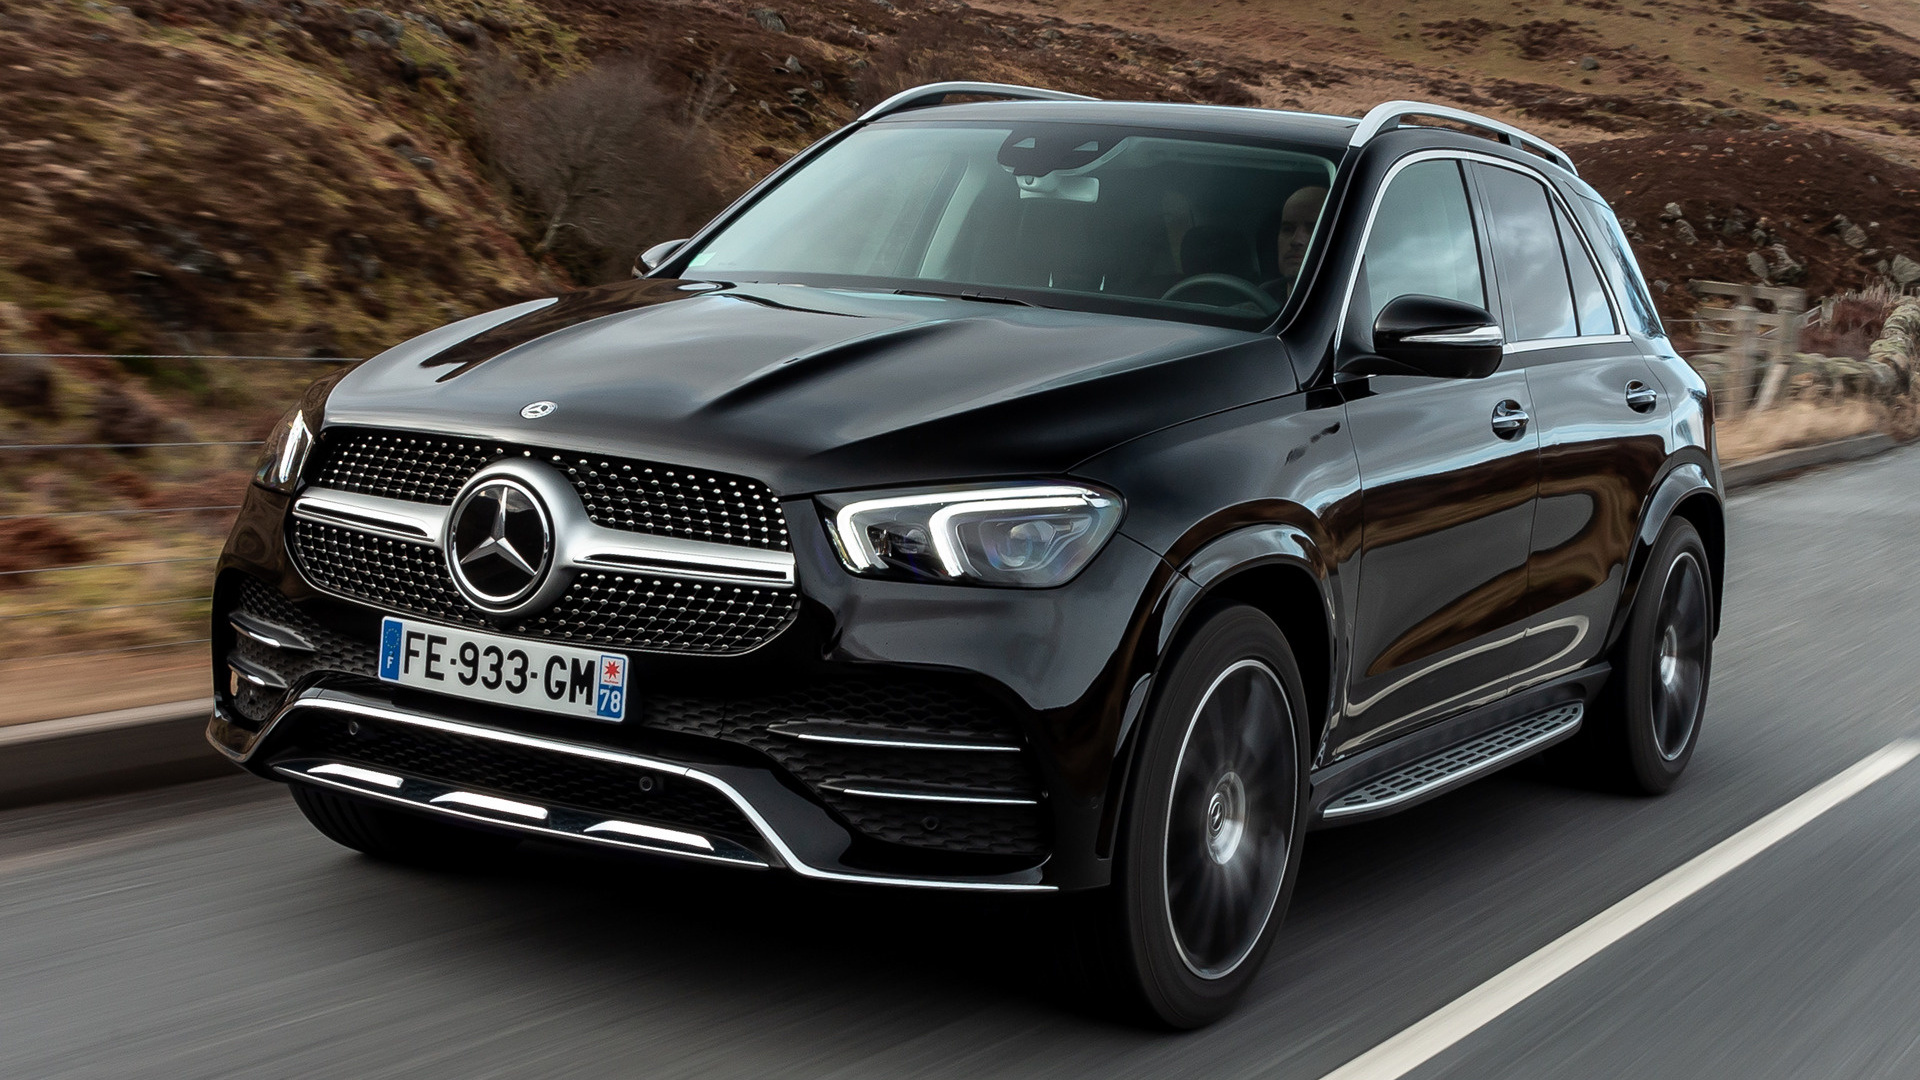 2019 Mercedes Benz Gle Class Amg Line Wallpapers And Hd Images